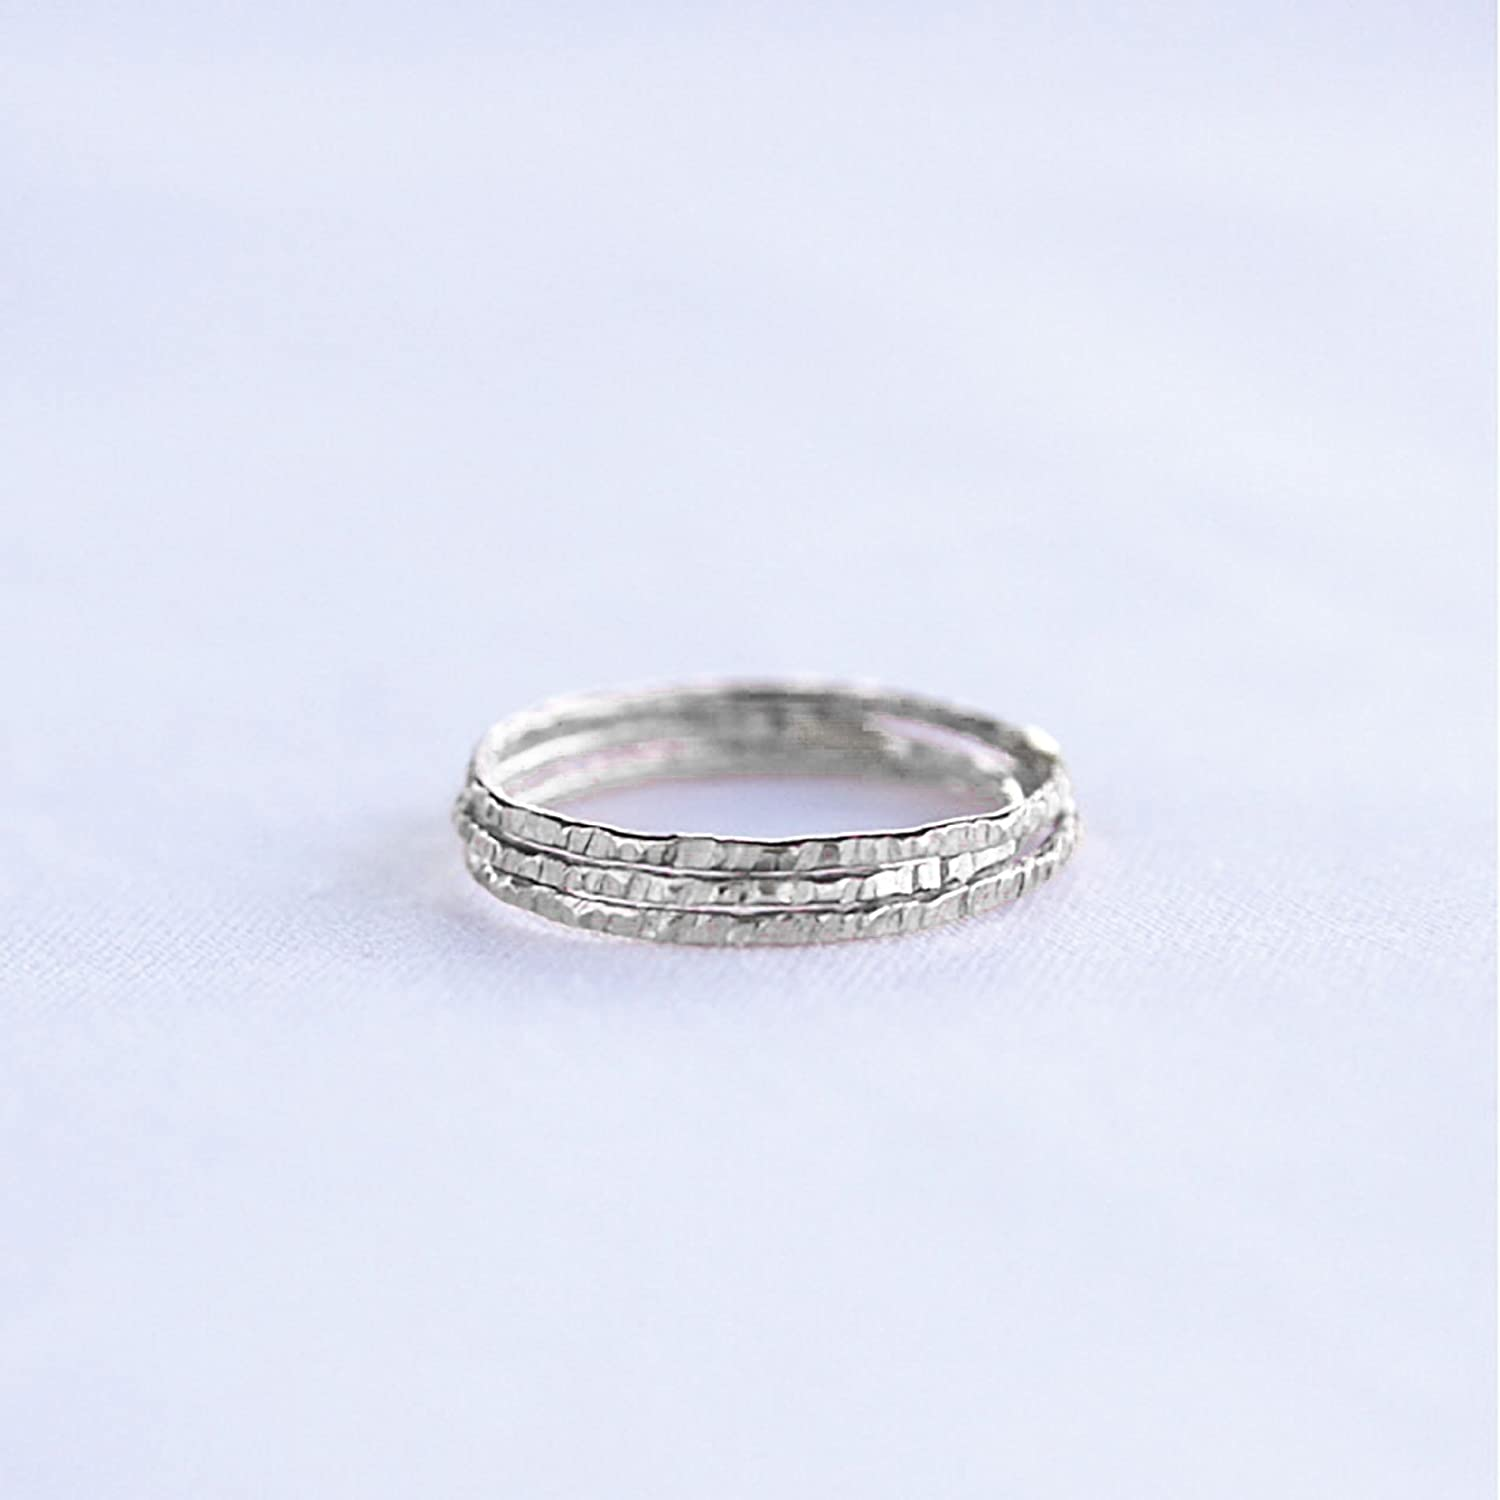 Handmade Hammered Sterling Silver Simple Stacking Ring